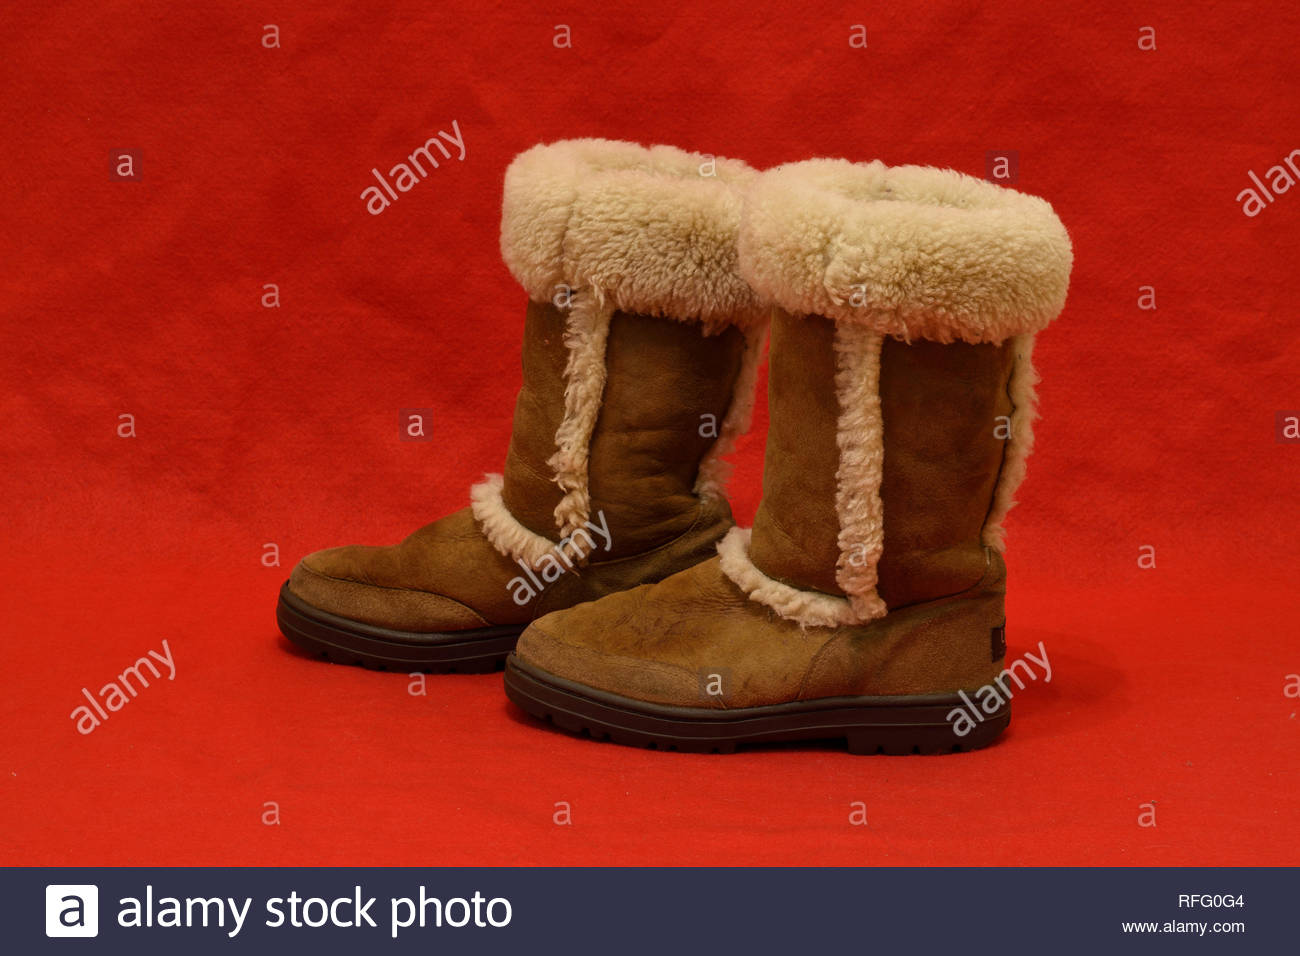 ea0cd69fffd Ugg Boots Stock Photos & Ugg Boots Stock Images - Alamy